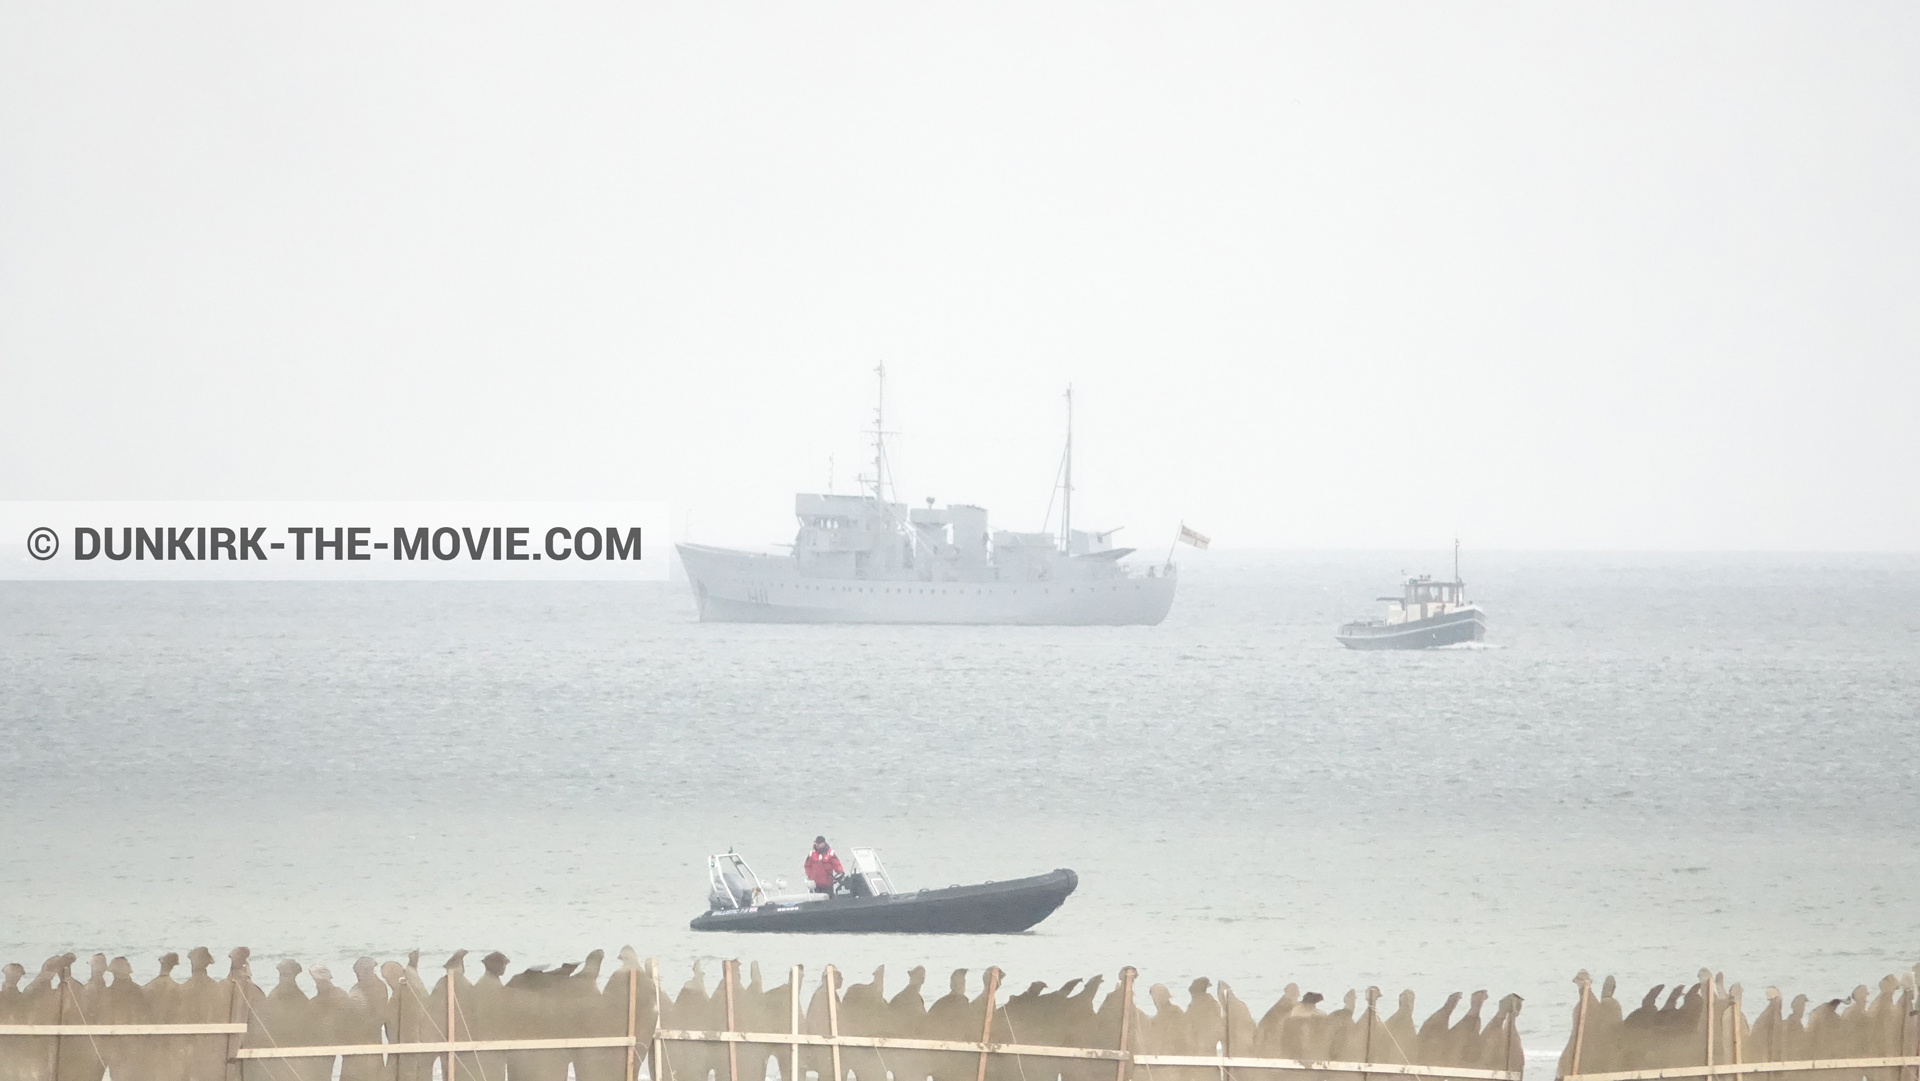 Picture with inflatable dinghy, decor, decor, calm sea, H11 - MLV Castor, technical team, grey sky, boat,  from behind the scene of the Dunkirk movie by Nolan